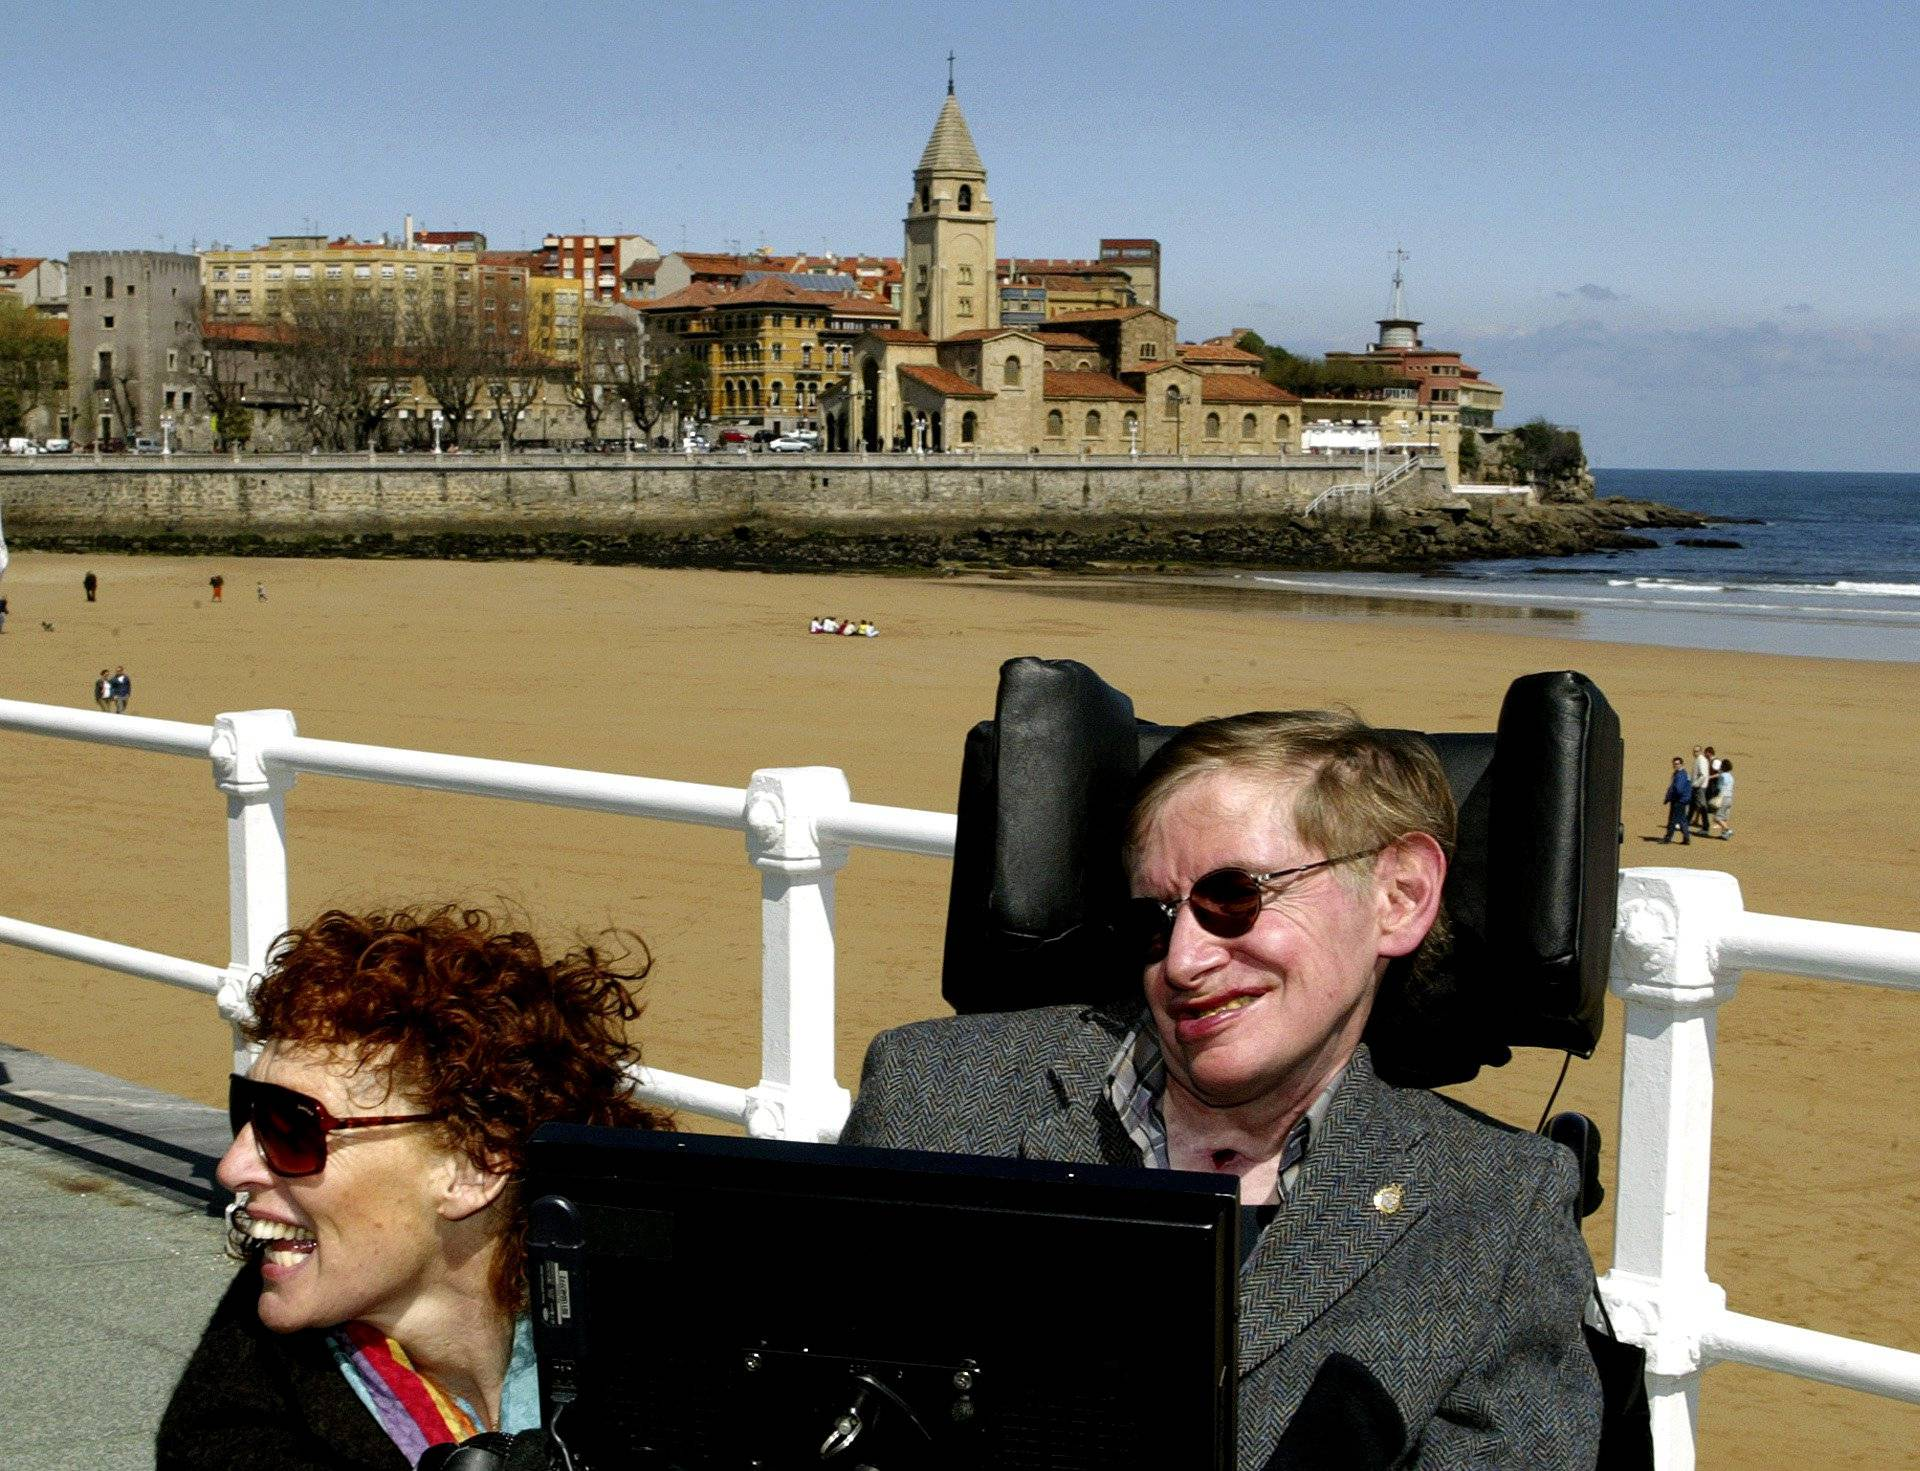 FILE PHOTO: British astrophysicist Hawking and his wife Elaine pose in front of a beach in Spain.